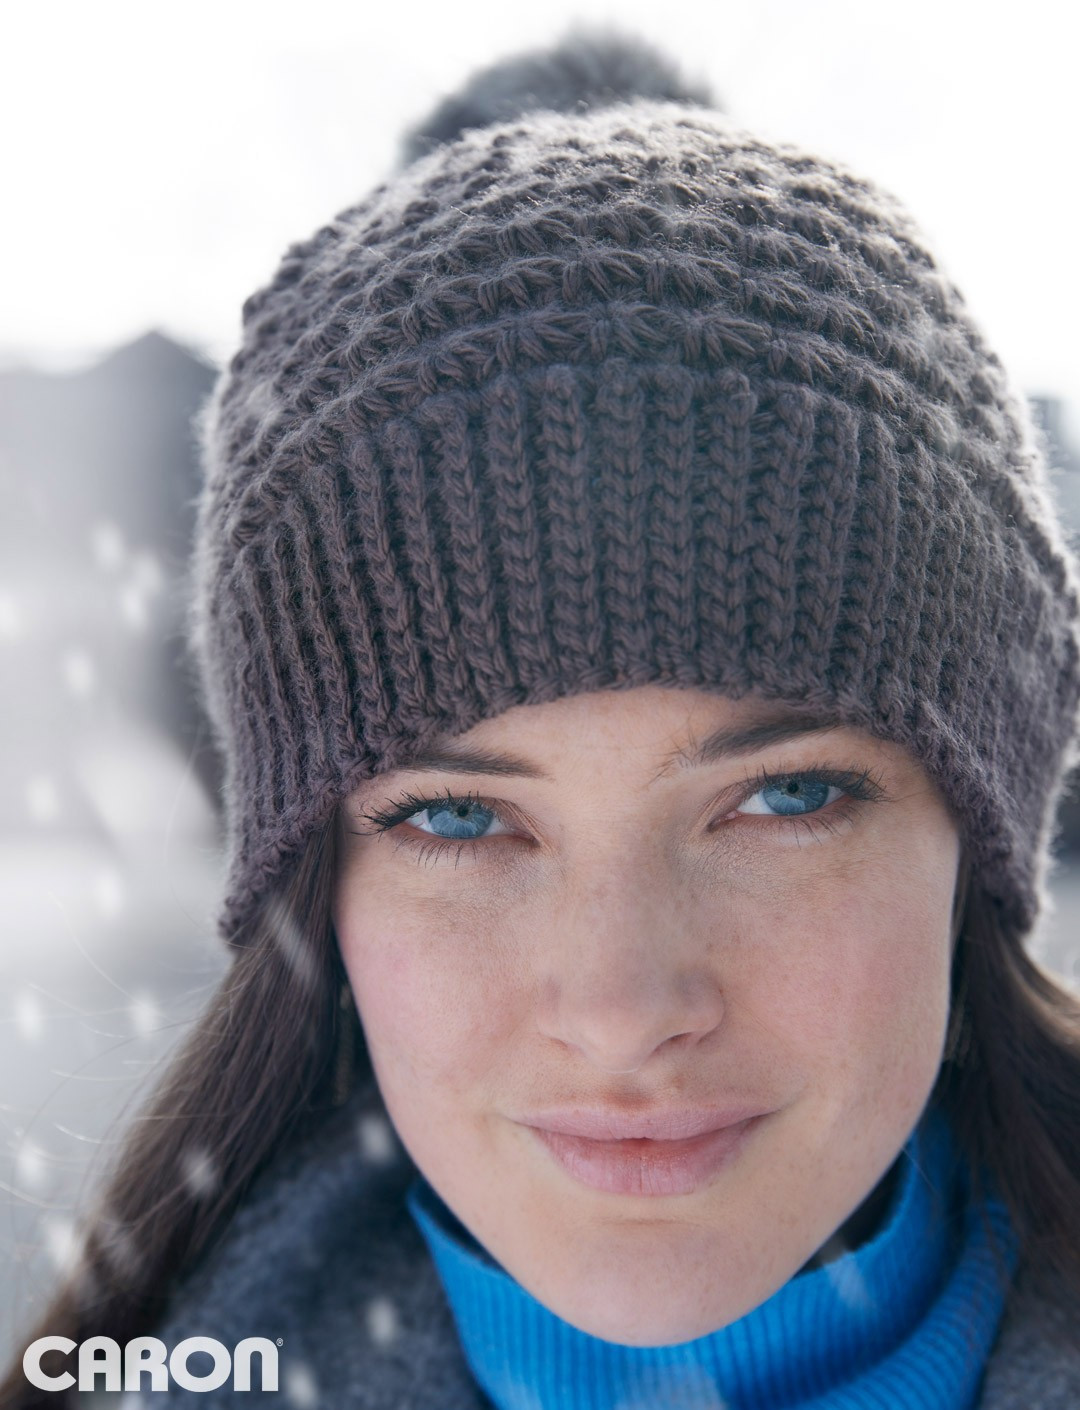 Unique Caron 5 Star Beanie Crochet Pattern Free Crochet Hat Patterns for Adults Of Incredible 50 Pics Free Crochet Hat Patterns for Adults